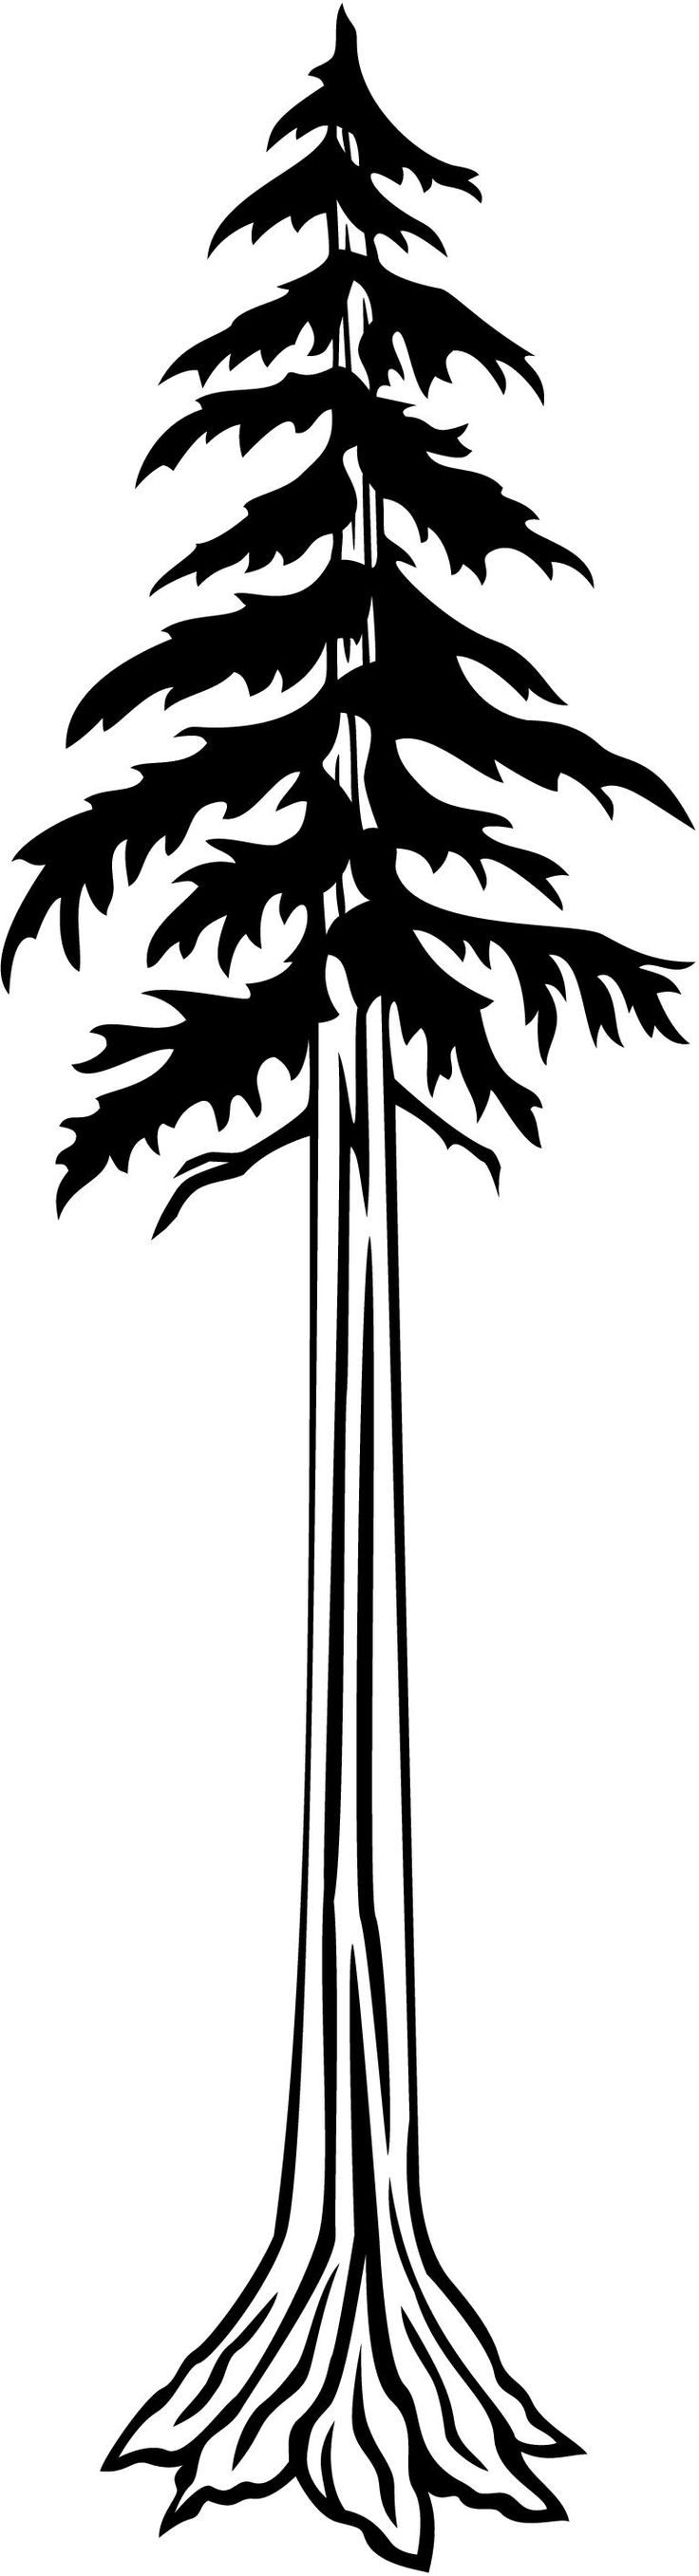 Redwood Tree Clip Art.